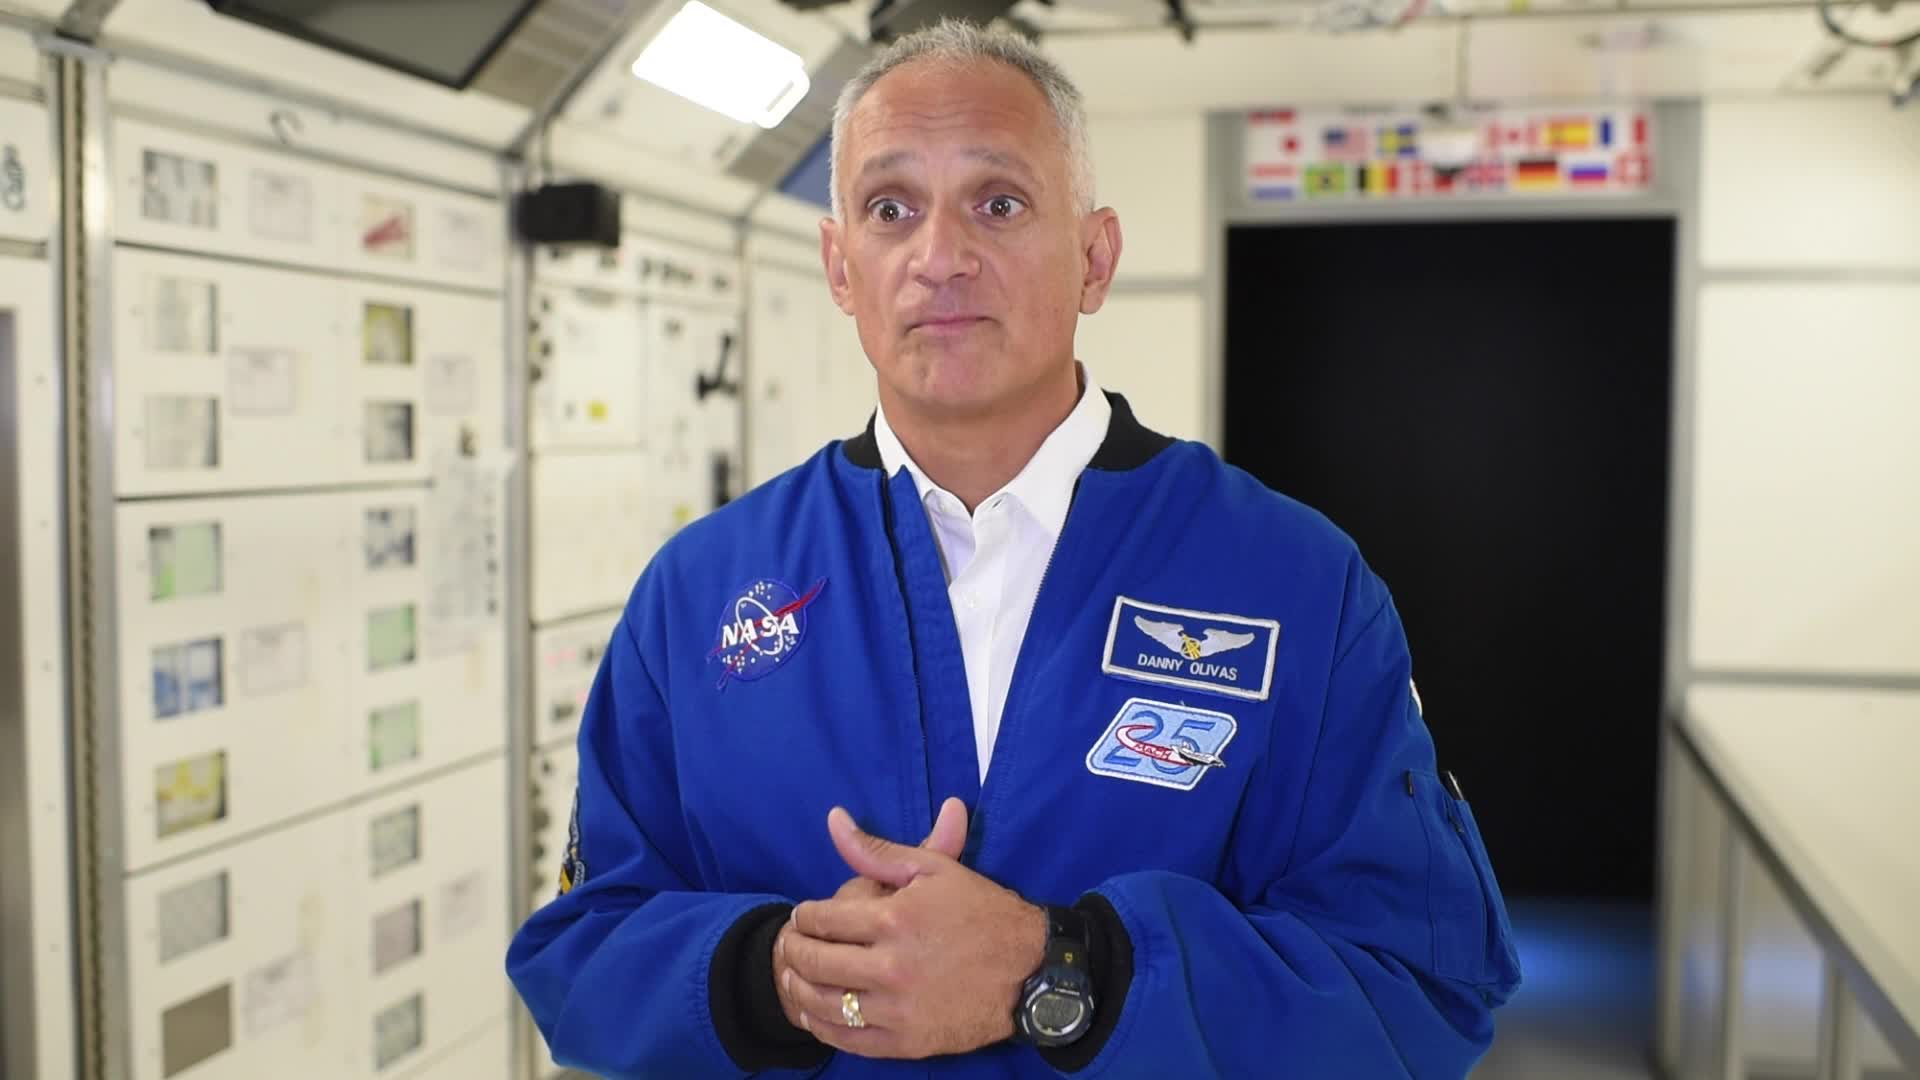 "John D. Olivas, Ph.D., former NASA astronaut: In print, his name is John D. Olivas - but in person, he goes by ""Danny."" His Ph.D. is in mechanical engineering and materials science. He has flown on STS-117 (Atlantis) where he conducted 2 spacewalks with over 14 hours of extravehicular activity (EVA), and STS-128 (Discovery) where he participated in 3 spacewalks gaining over 20 hours of EVA. By the way, both missions landed at Edwards AFB. He is bilingual in English and Spanish."